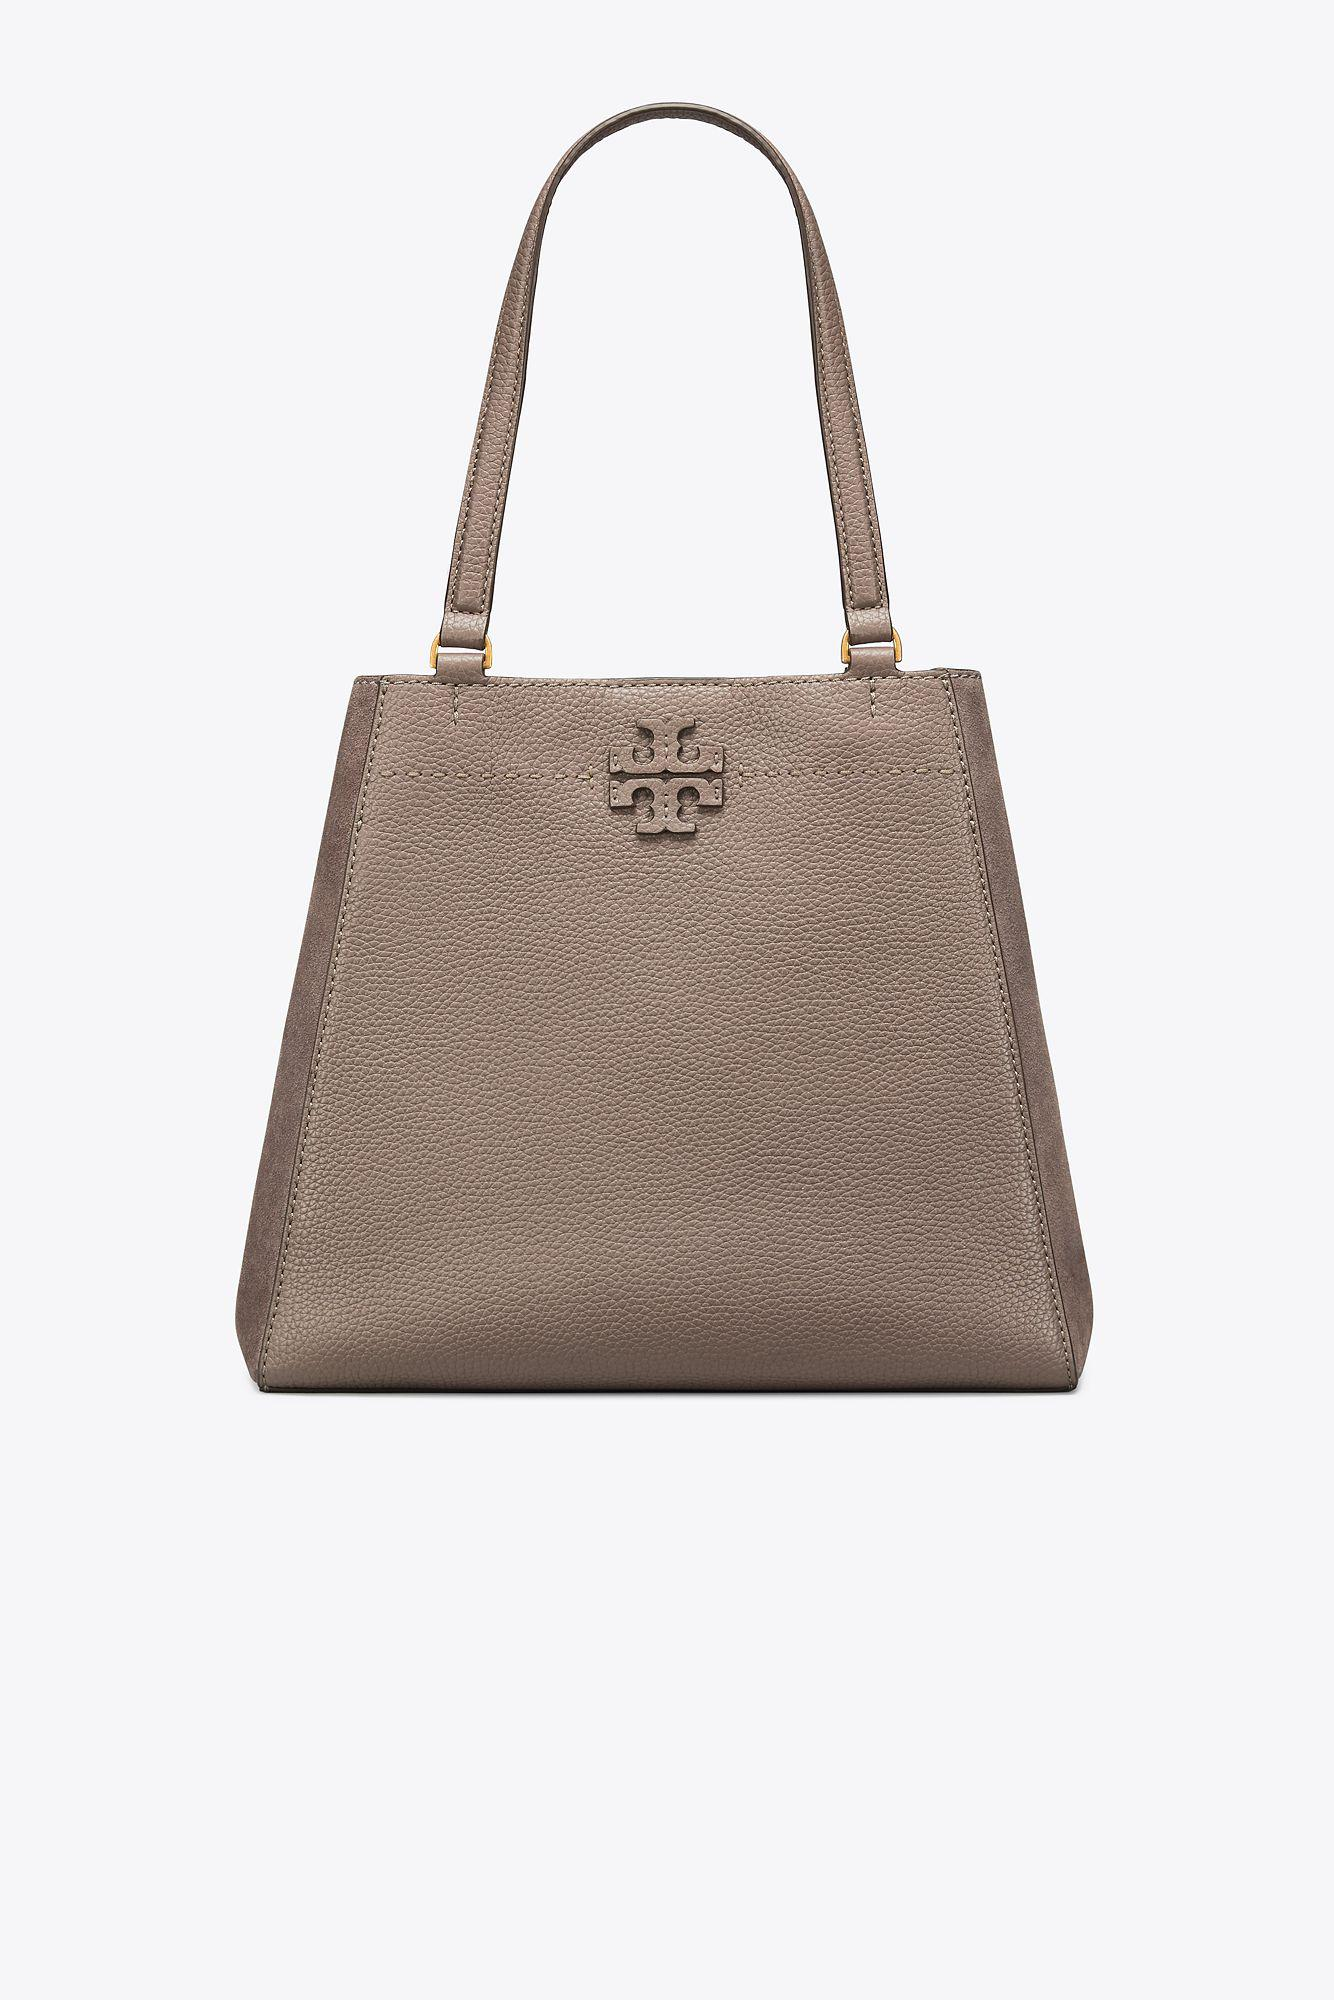 677af8362859 Tory Burch Mcgraw Mixed-materials Carryall in Brown - Lyst